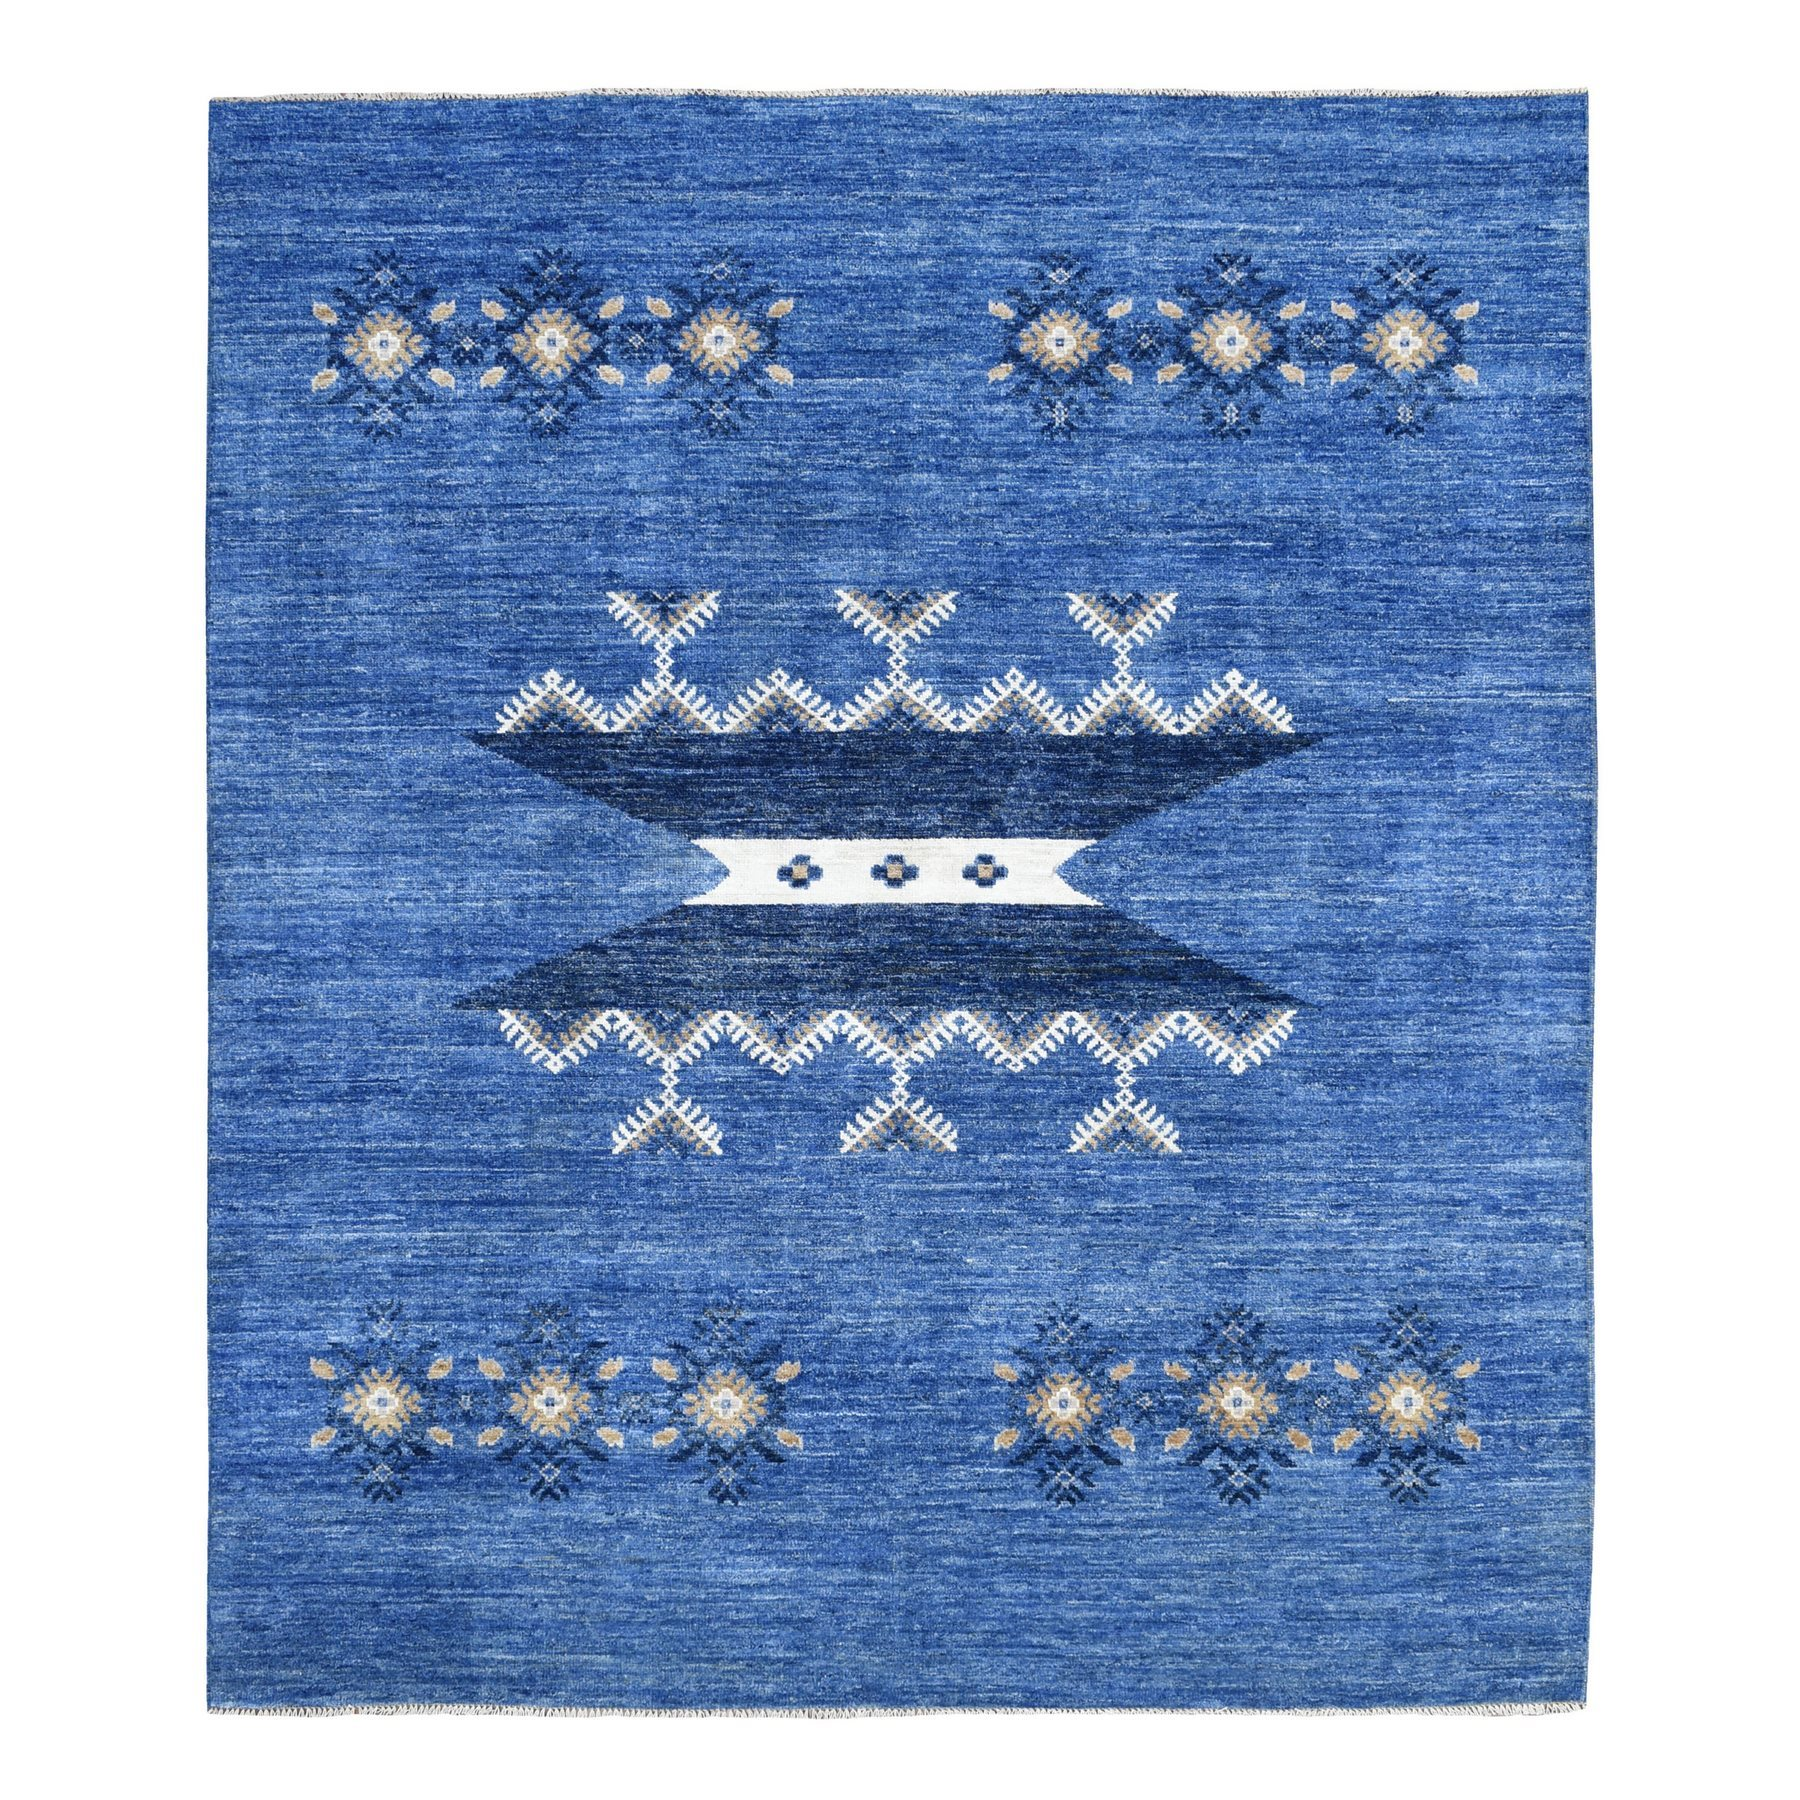 Nomadic And Village Collection Hand Knotted Blue Rug No: 1135994